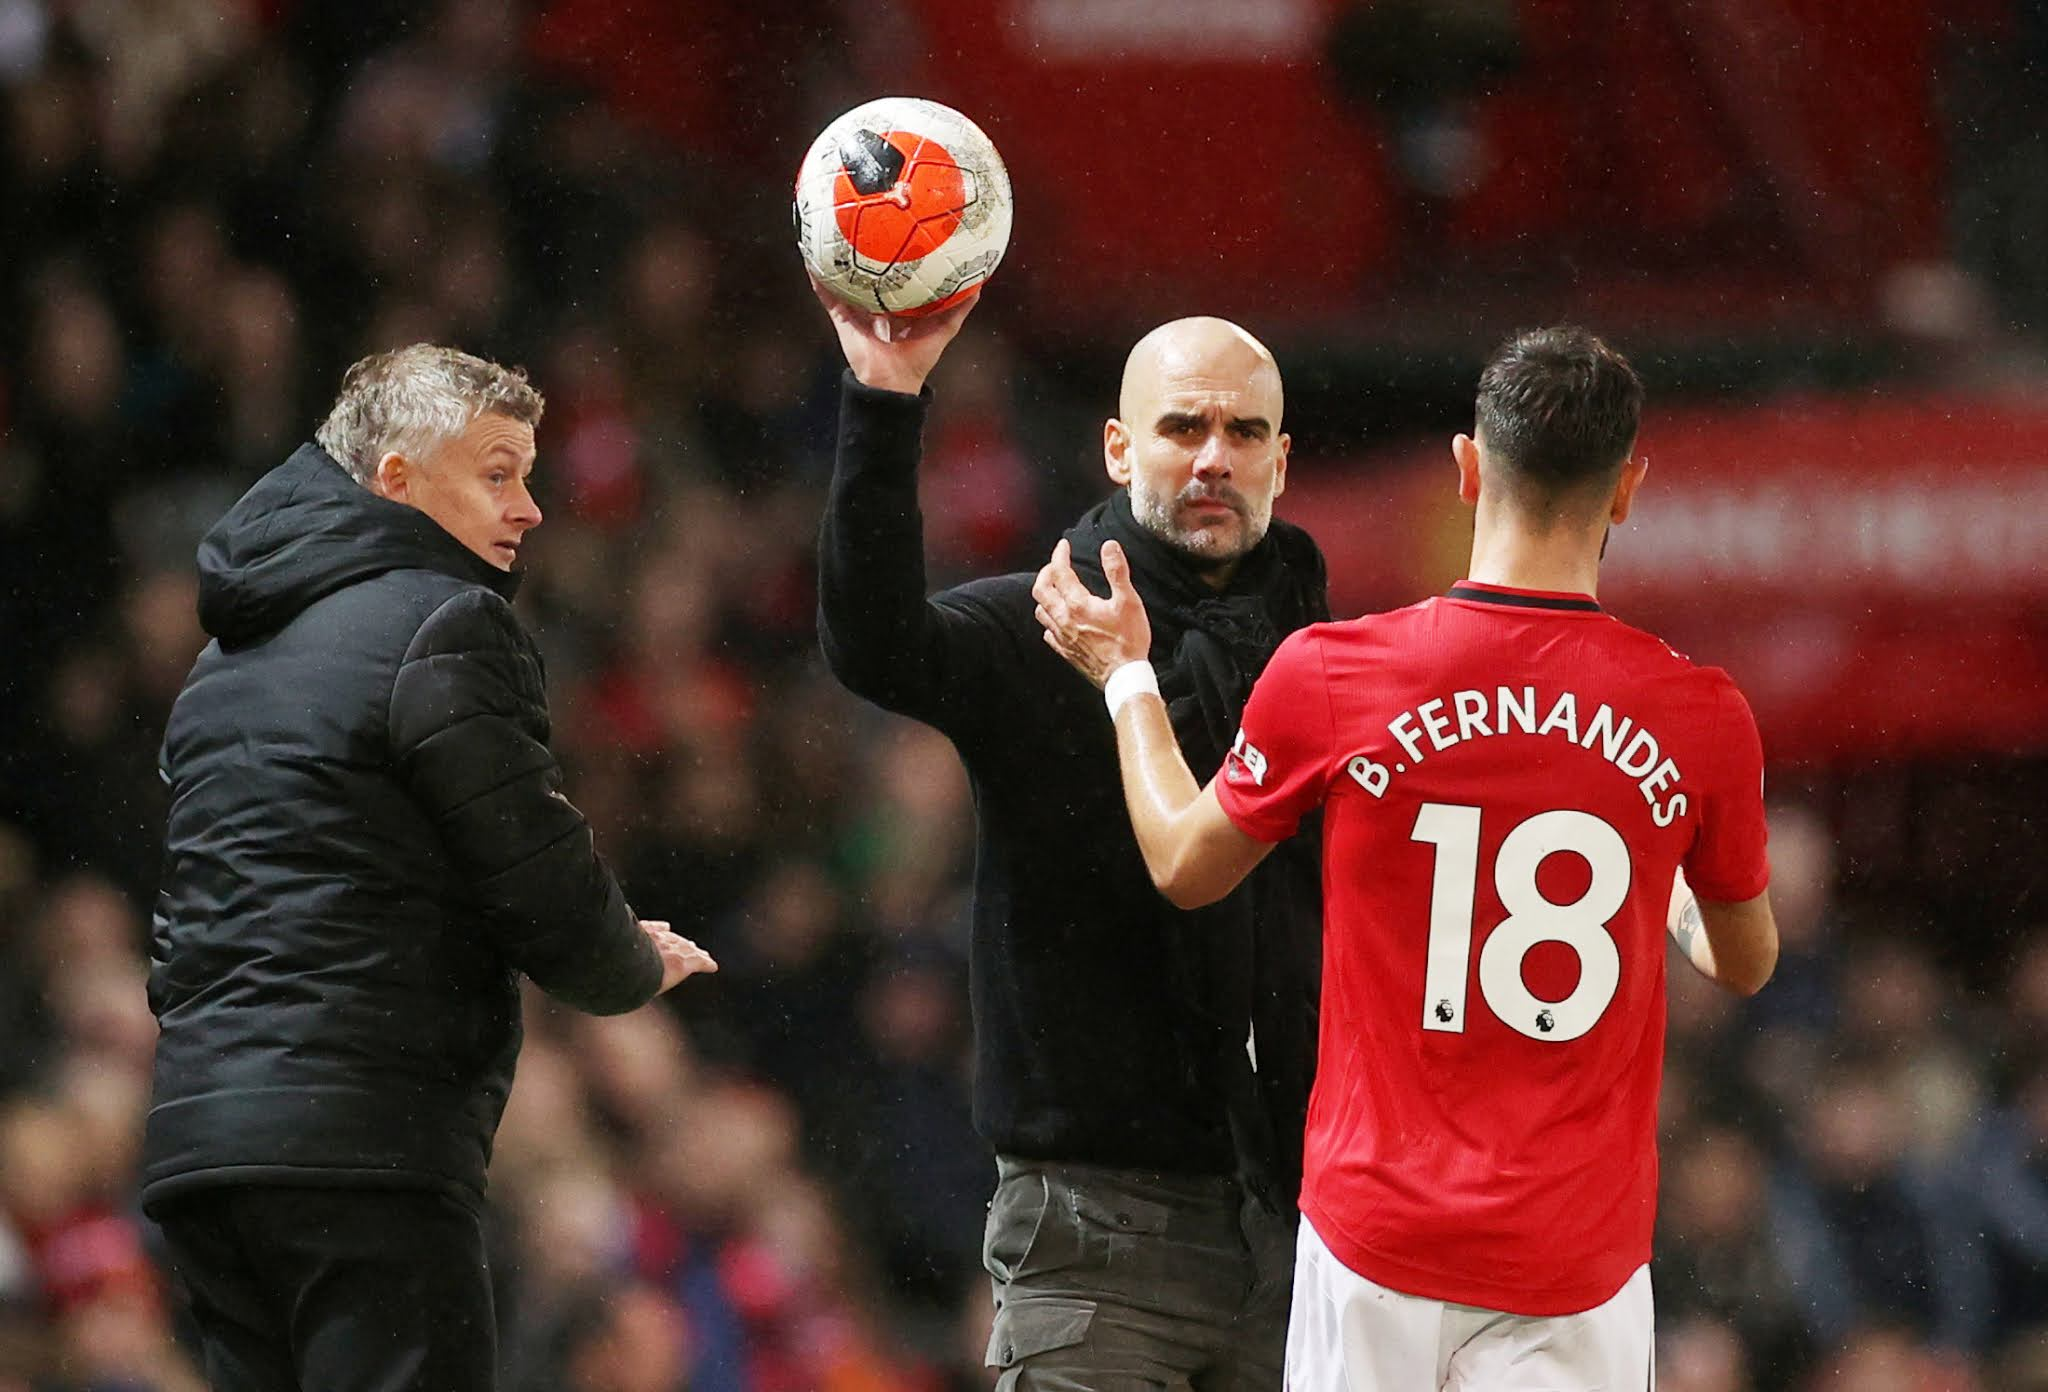 Pep Guardiola will seek to claim in his first Premier League victory over United in four attempts this Sunday